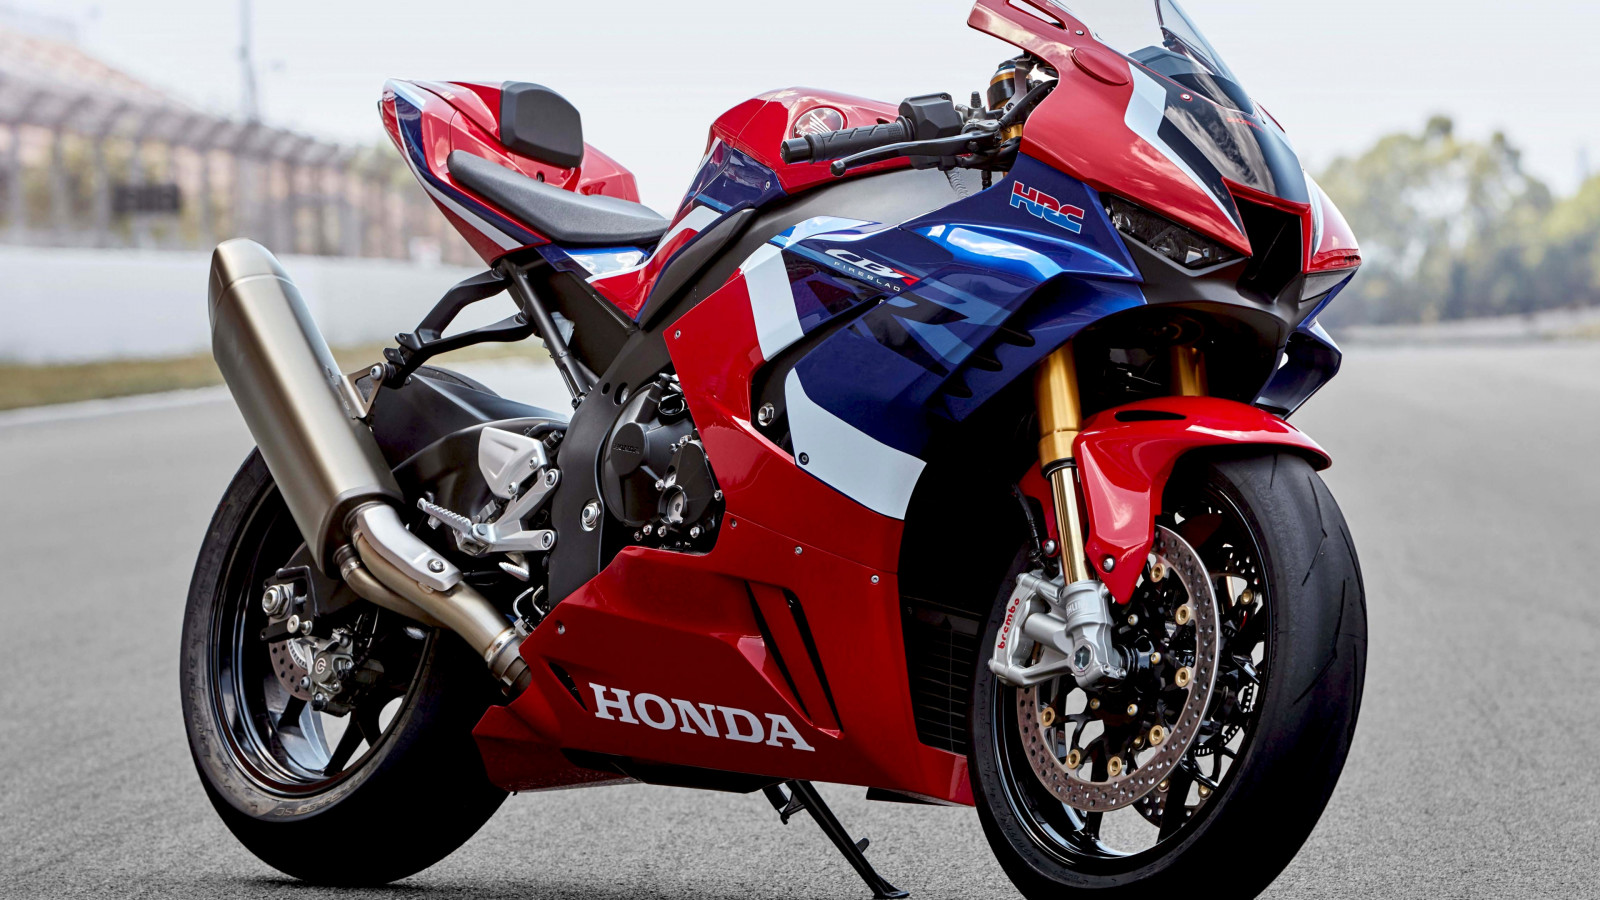 Honda CBR1000RR R SP wallpaper 1600x900